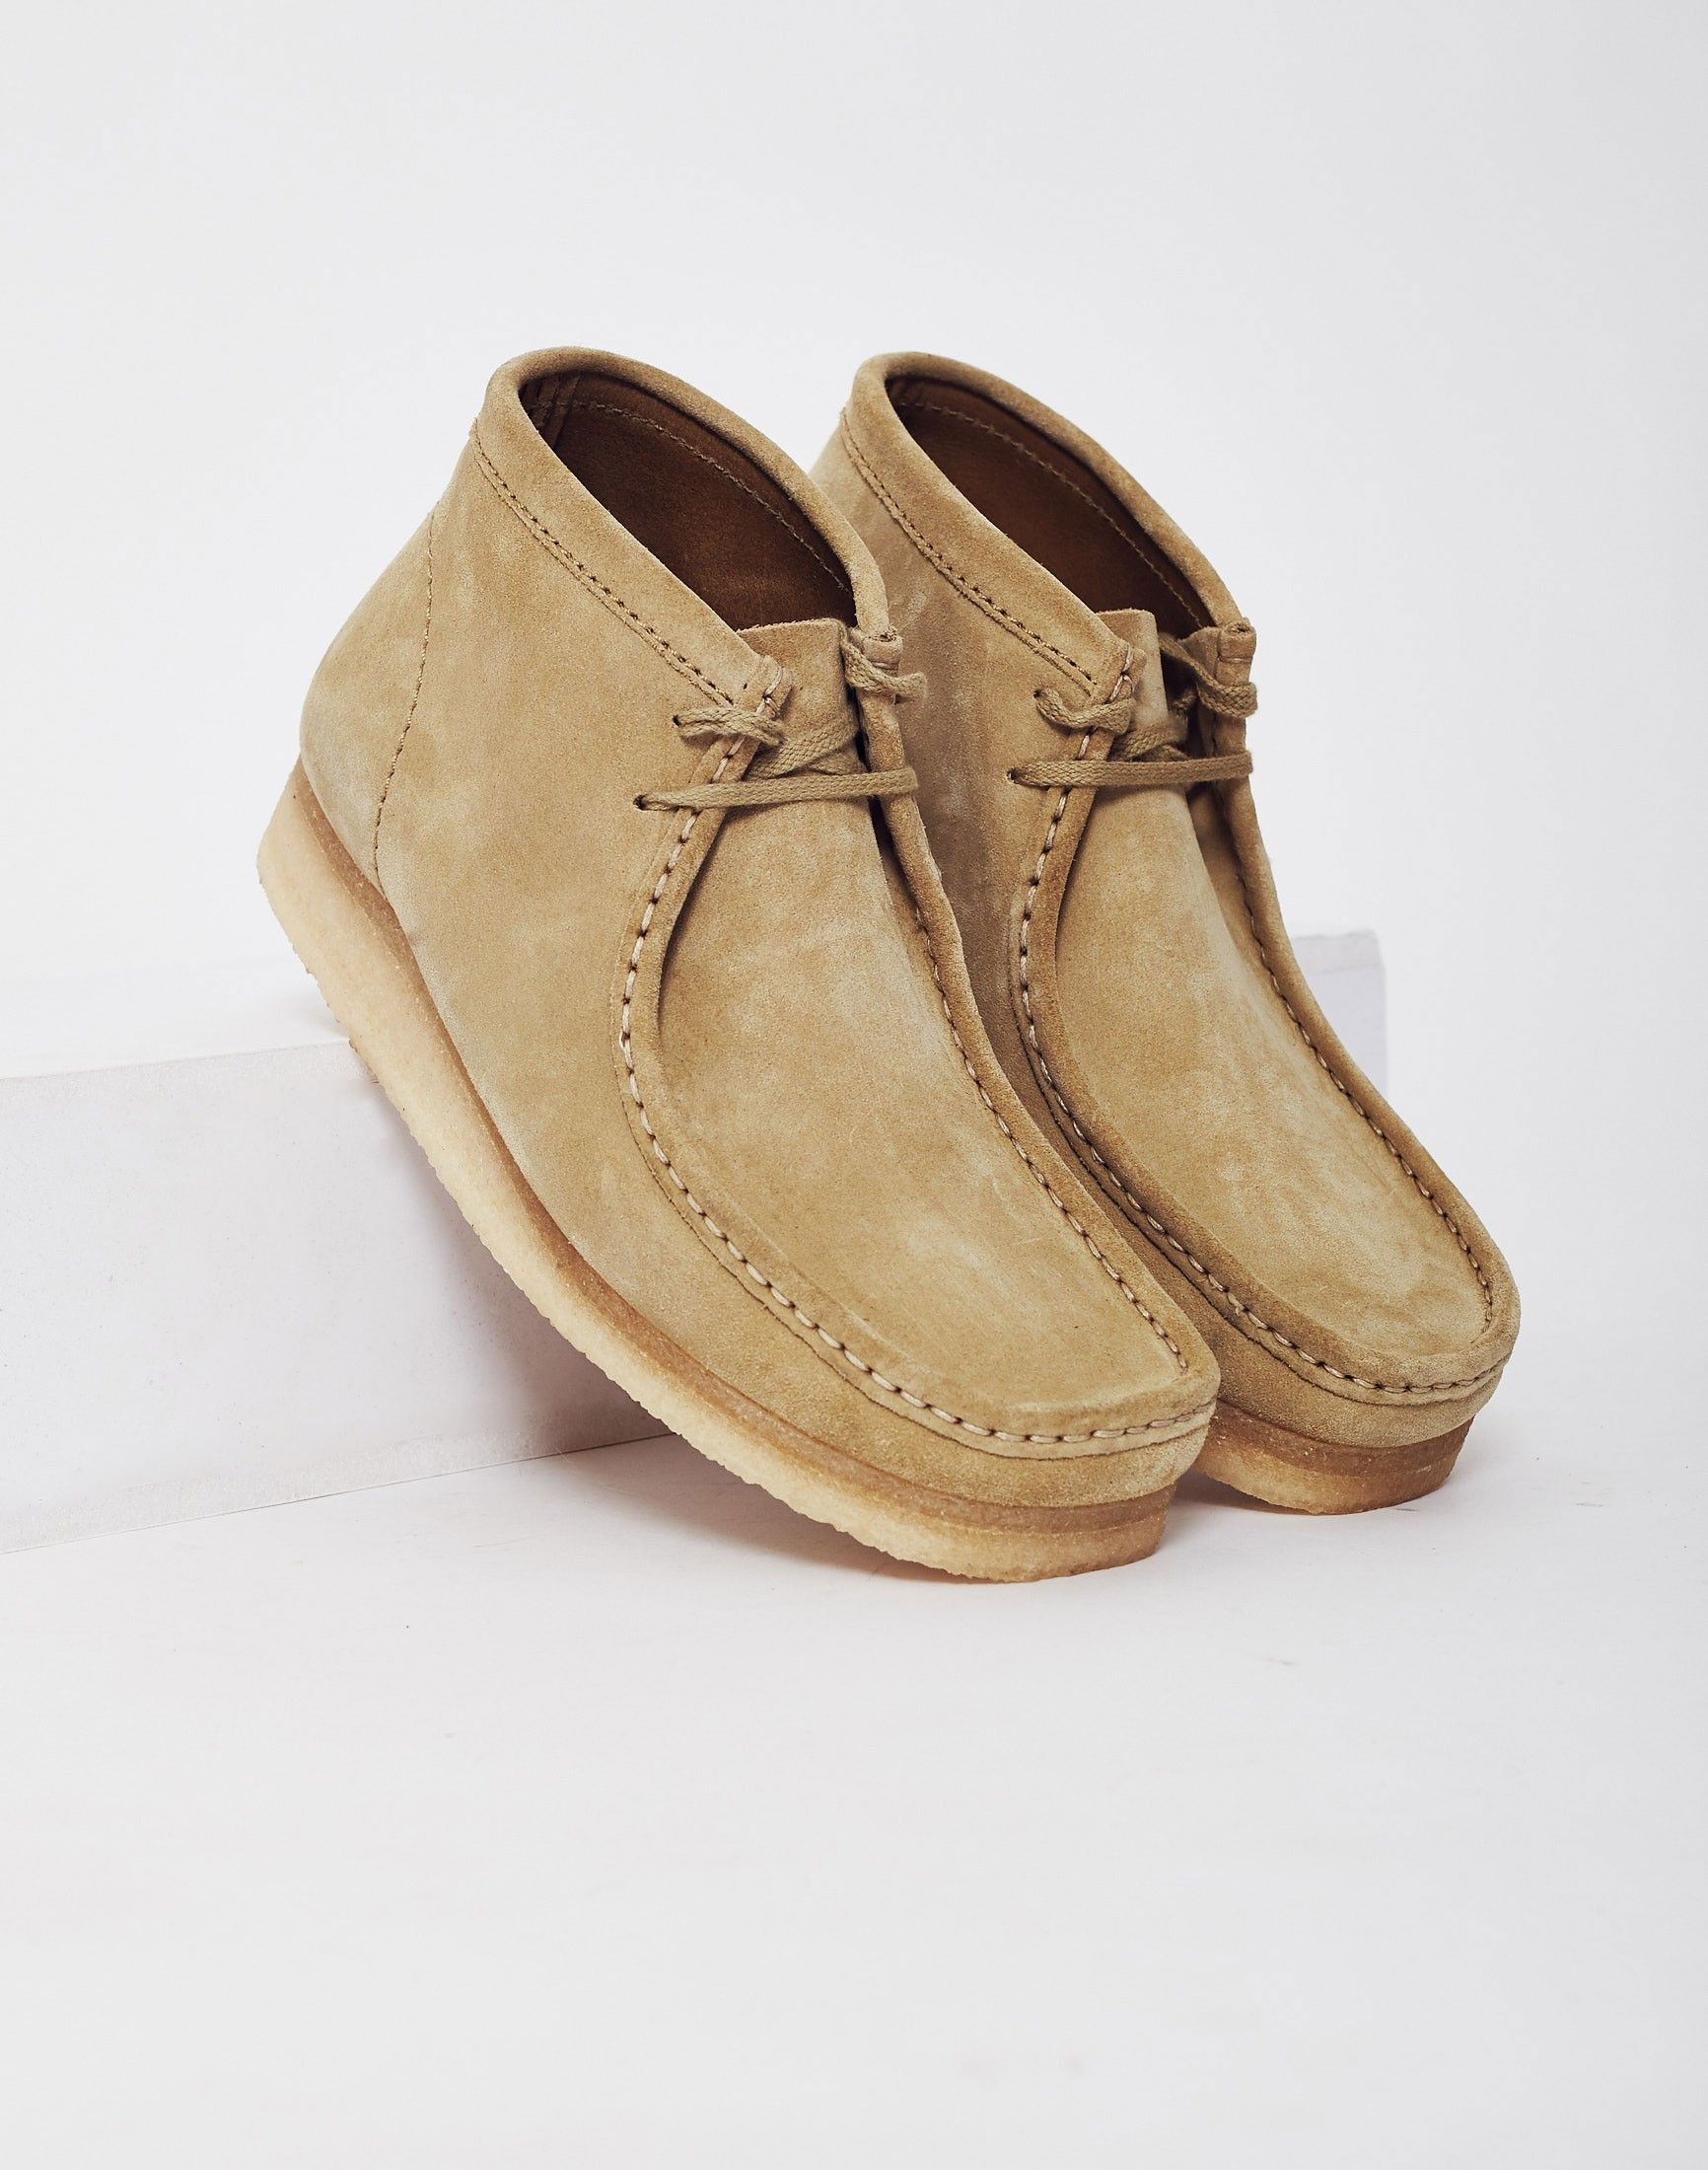 Clarks Footwear: AW13 Collection pictures